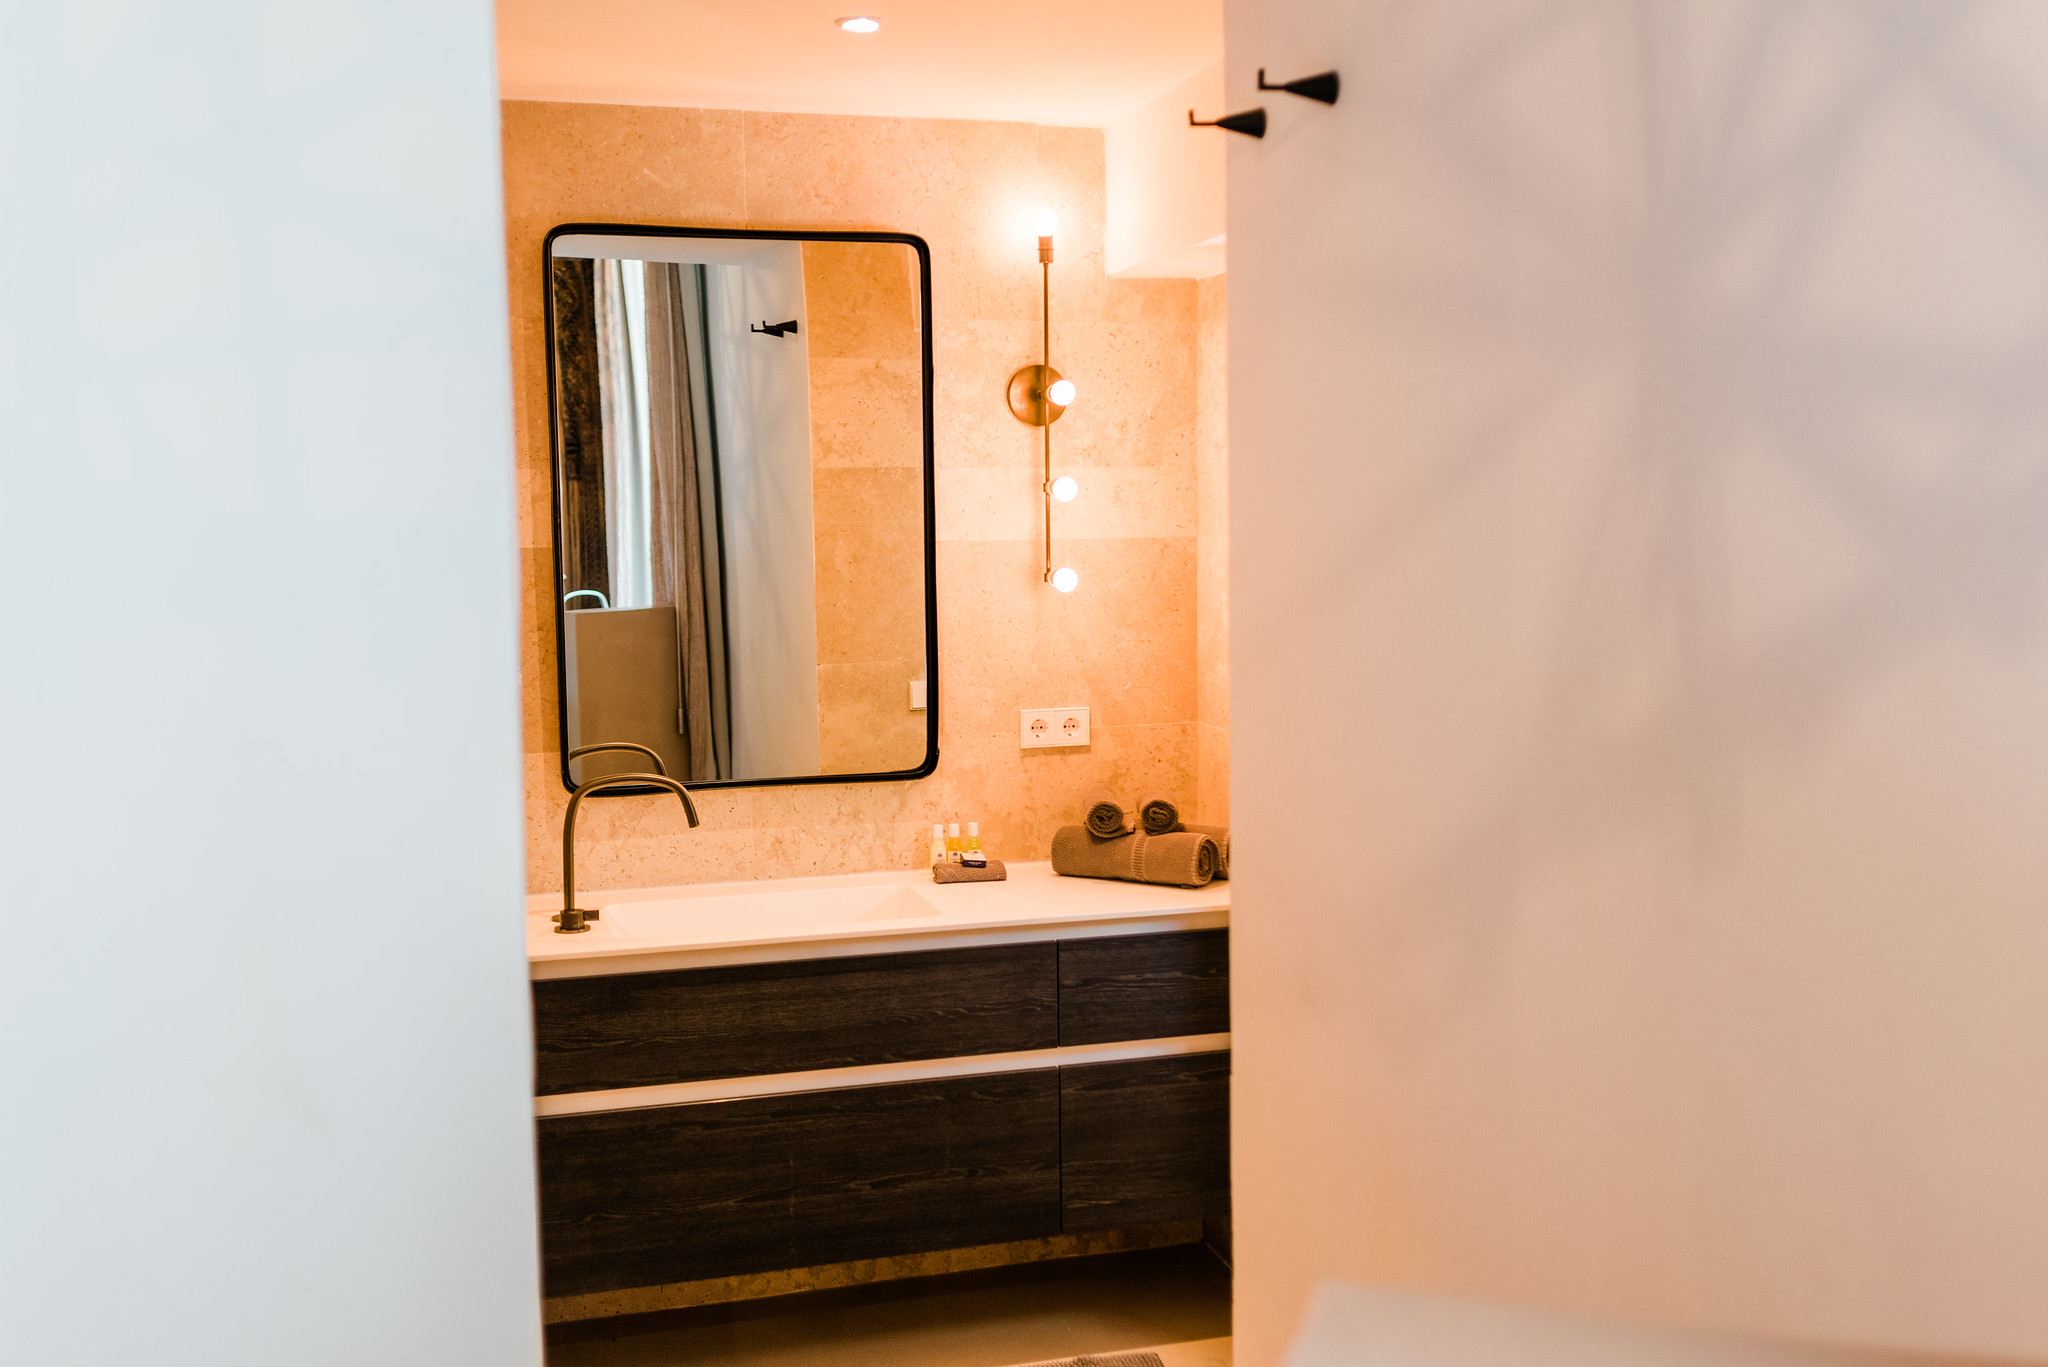 https://www.white-ibiza.com/wp-content/uploads/2020/06/white-ibiza-villas-can-calma-interior-bathroom2.jpg